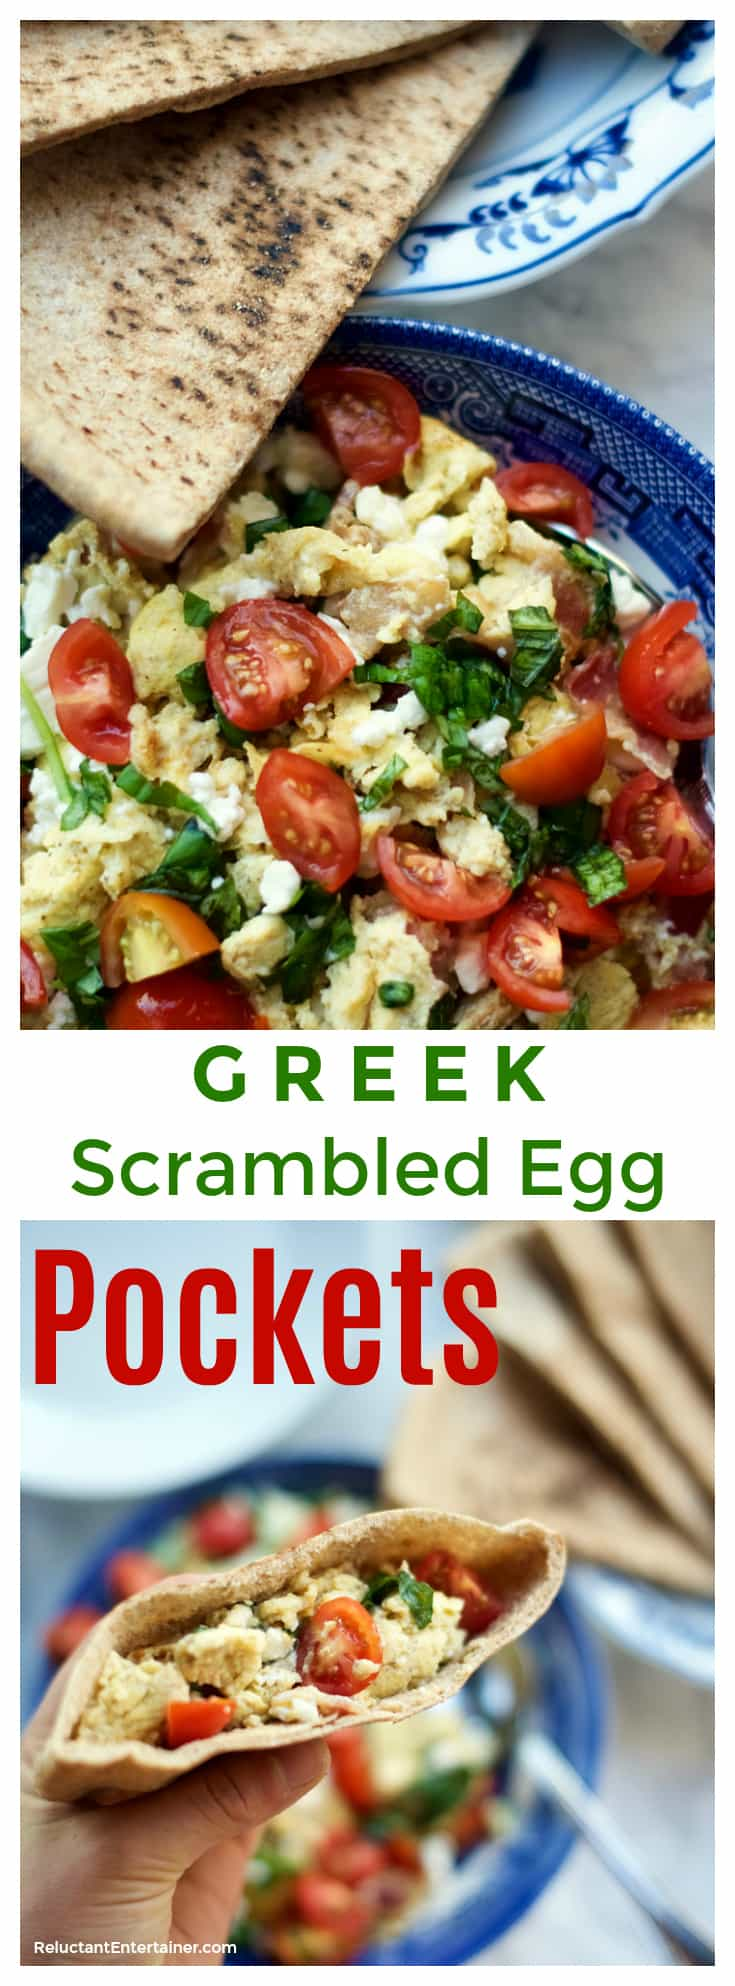 Greek Scrambled Egg Pockets Recipe